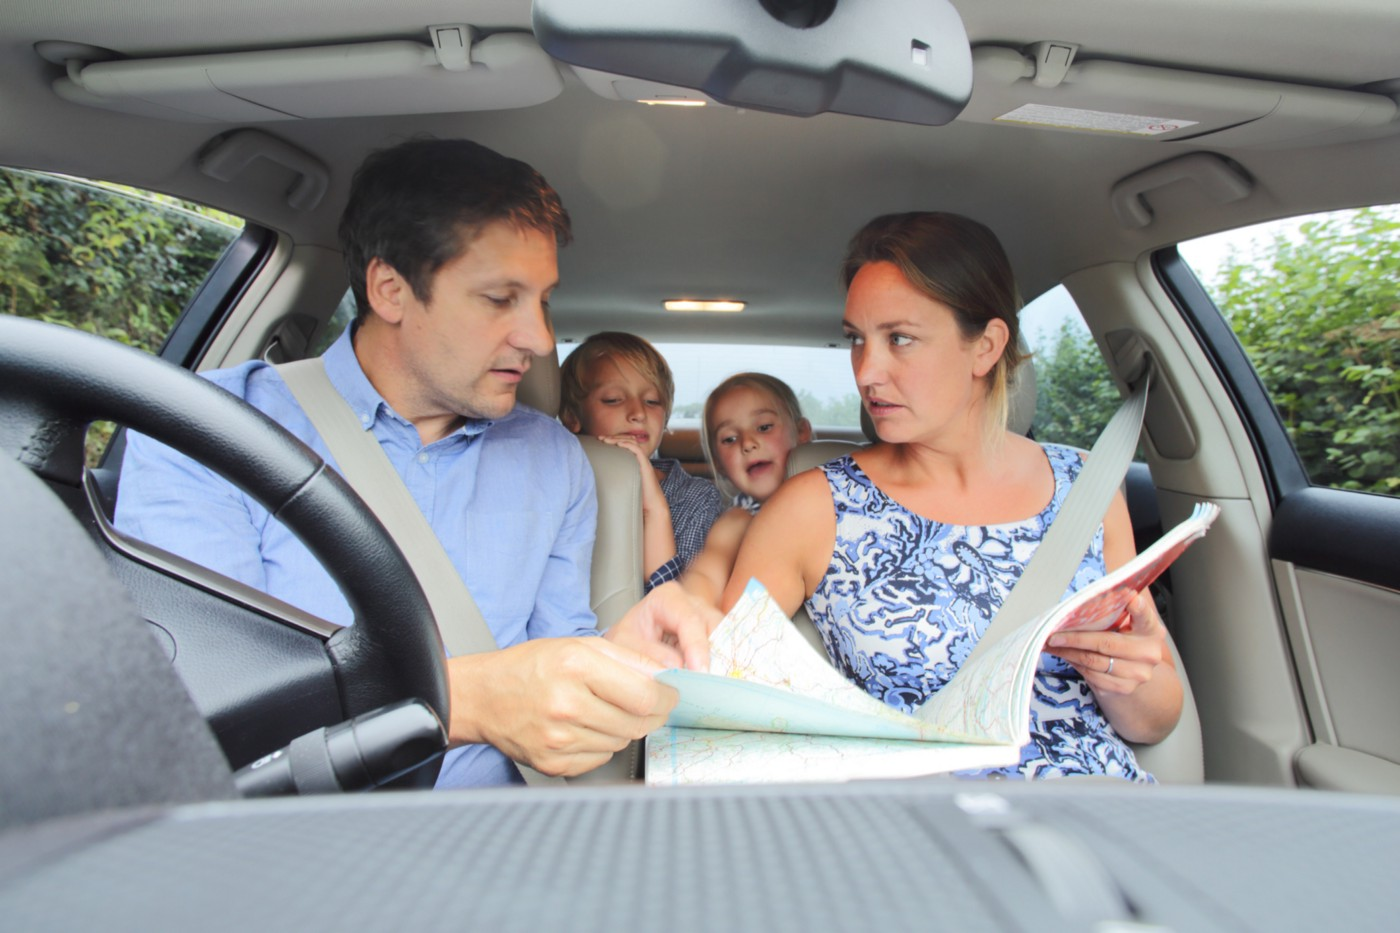 2 parents fight over map directions in the car while their children peer over the back seat.